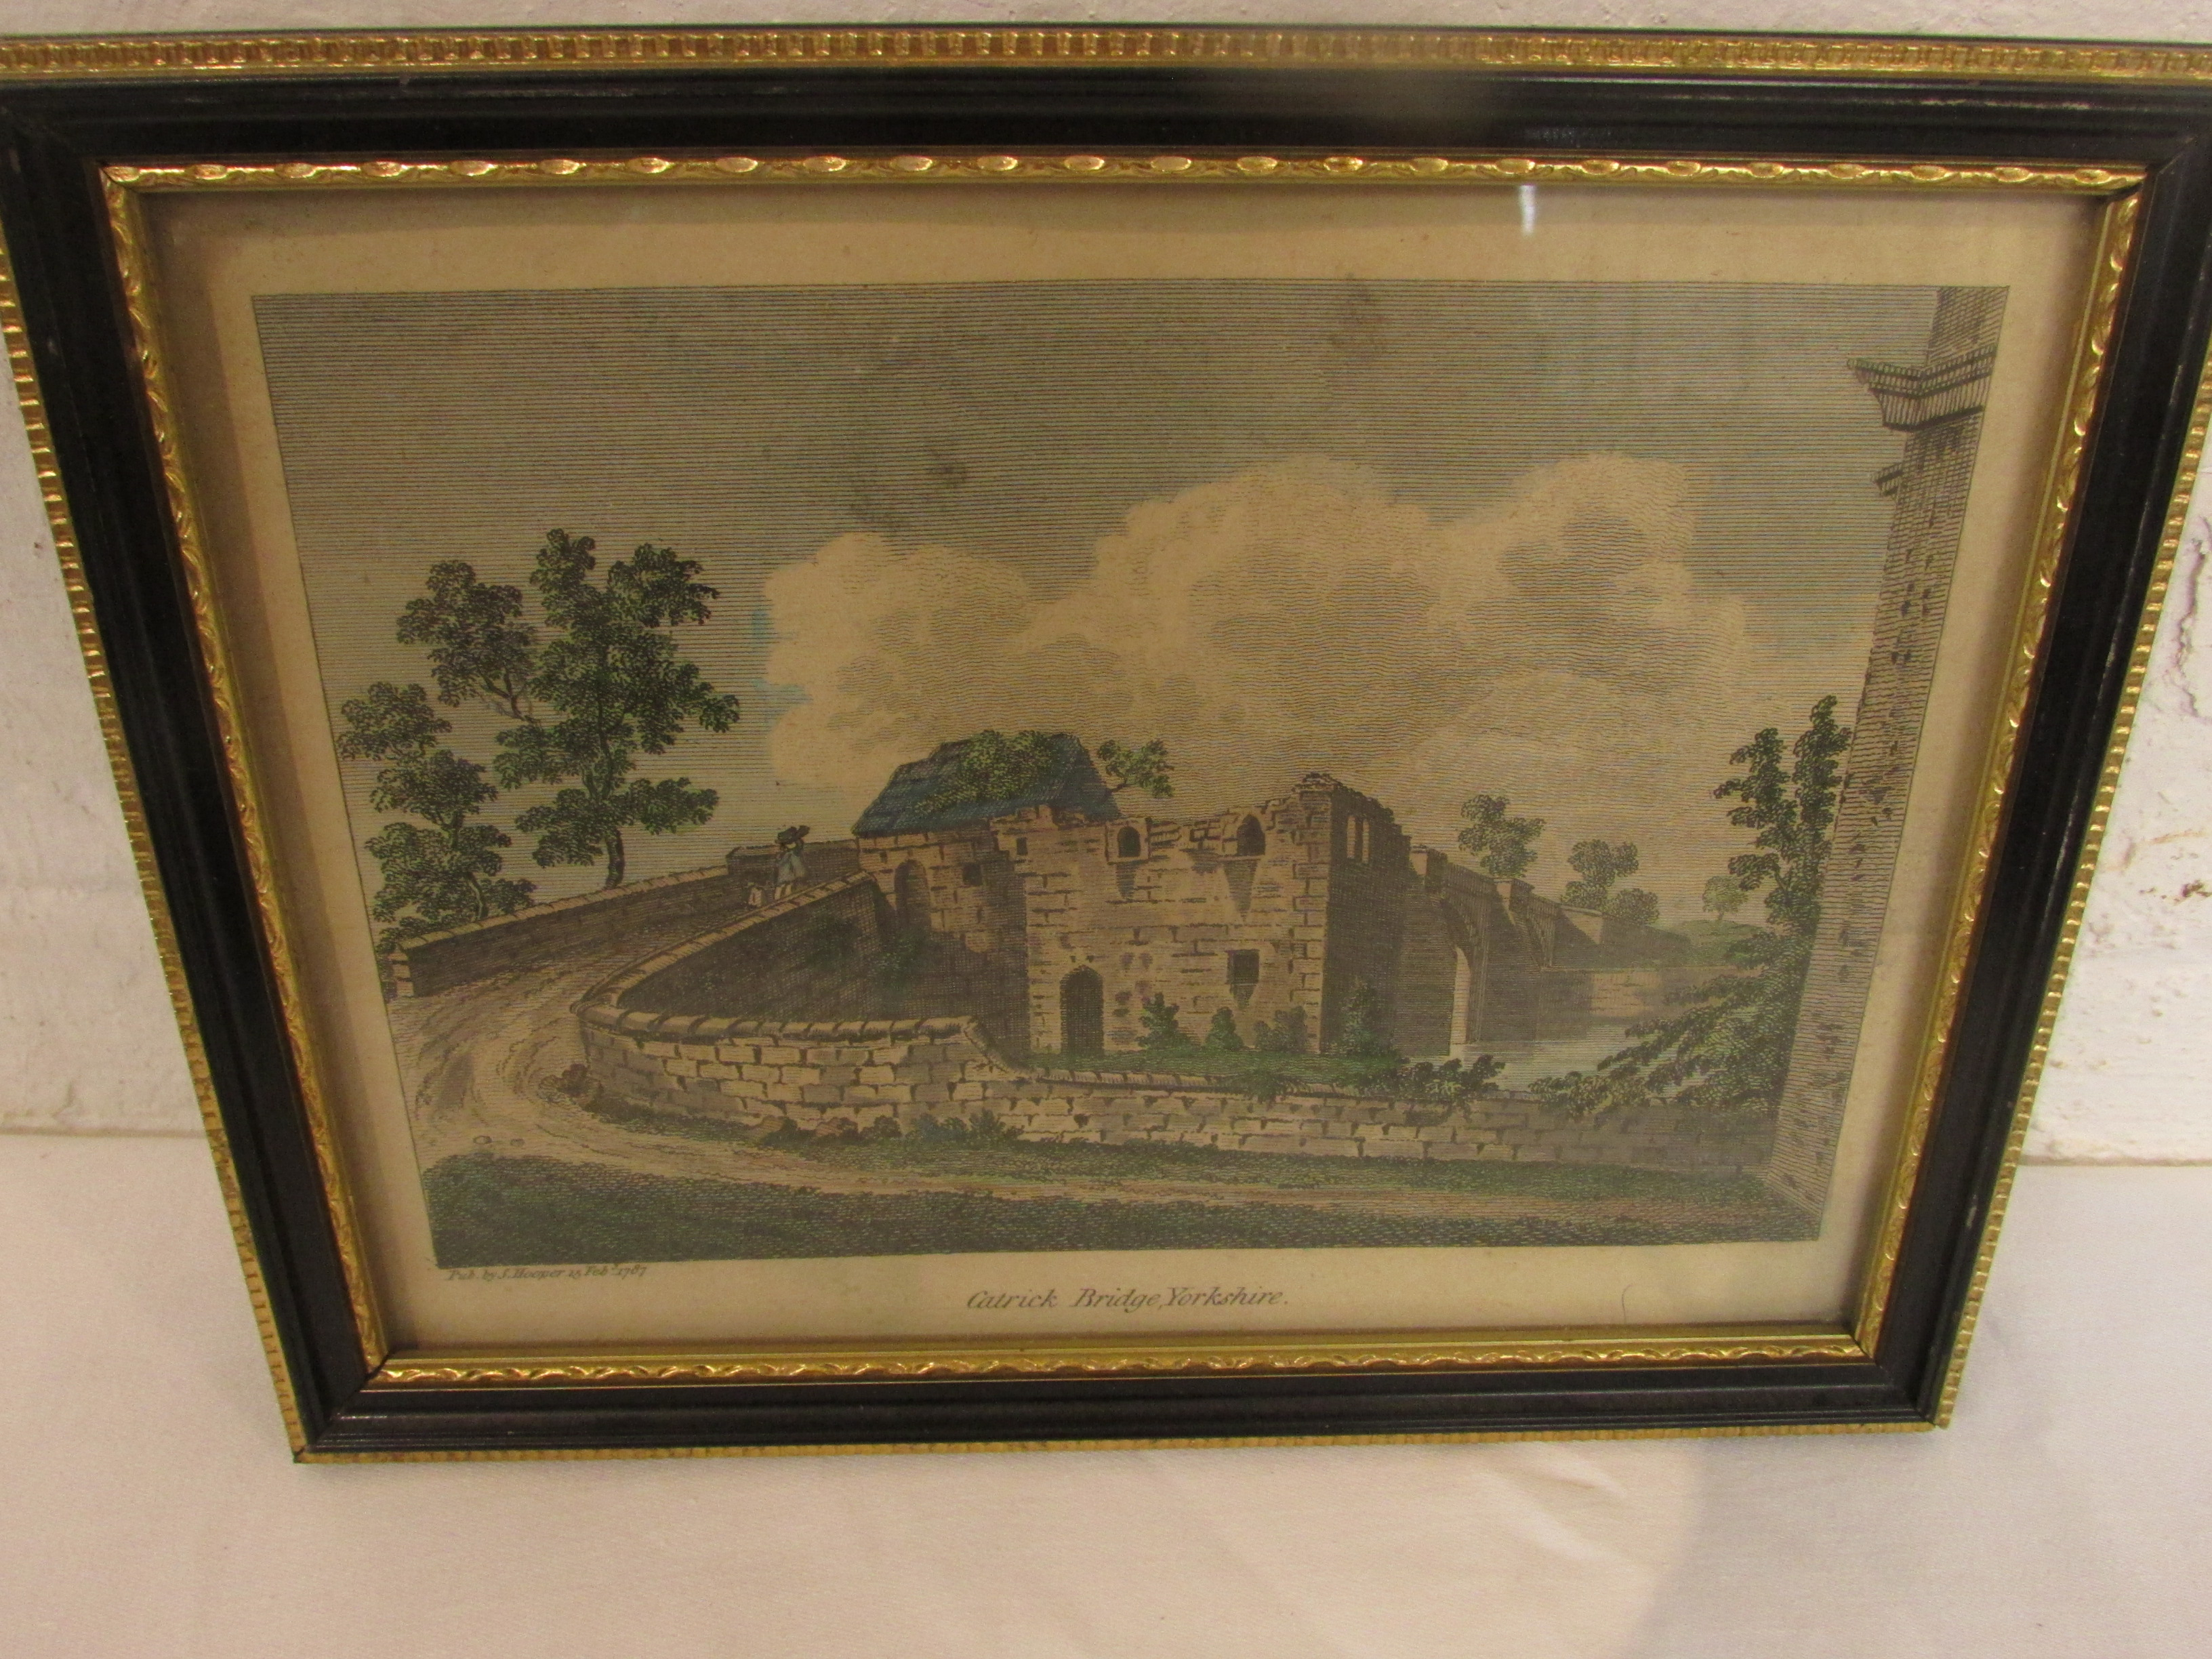 Lot 226 - After S Hooper - four 18th century tinted engravings of Yorkshire scenes 'Catrick Bridge', '